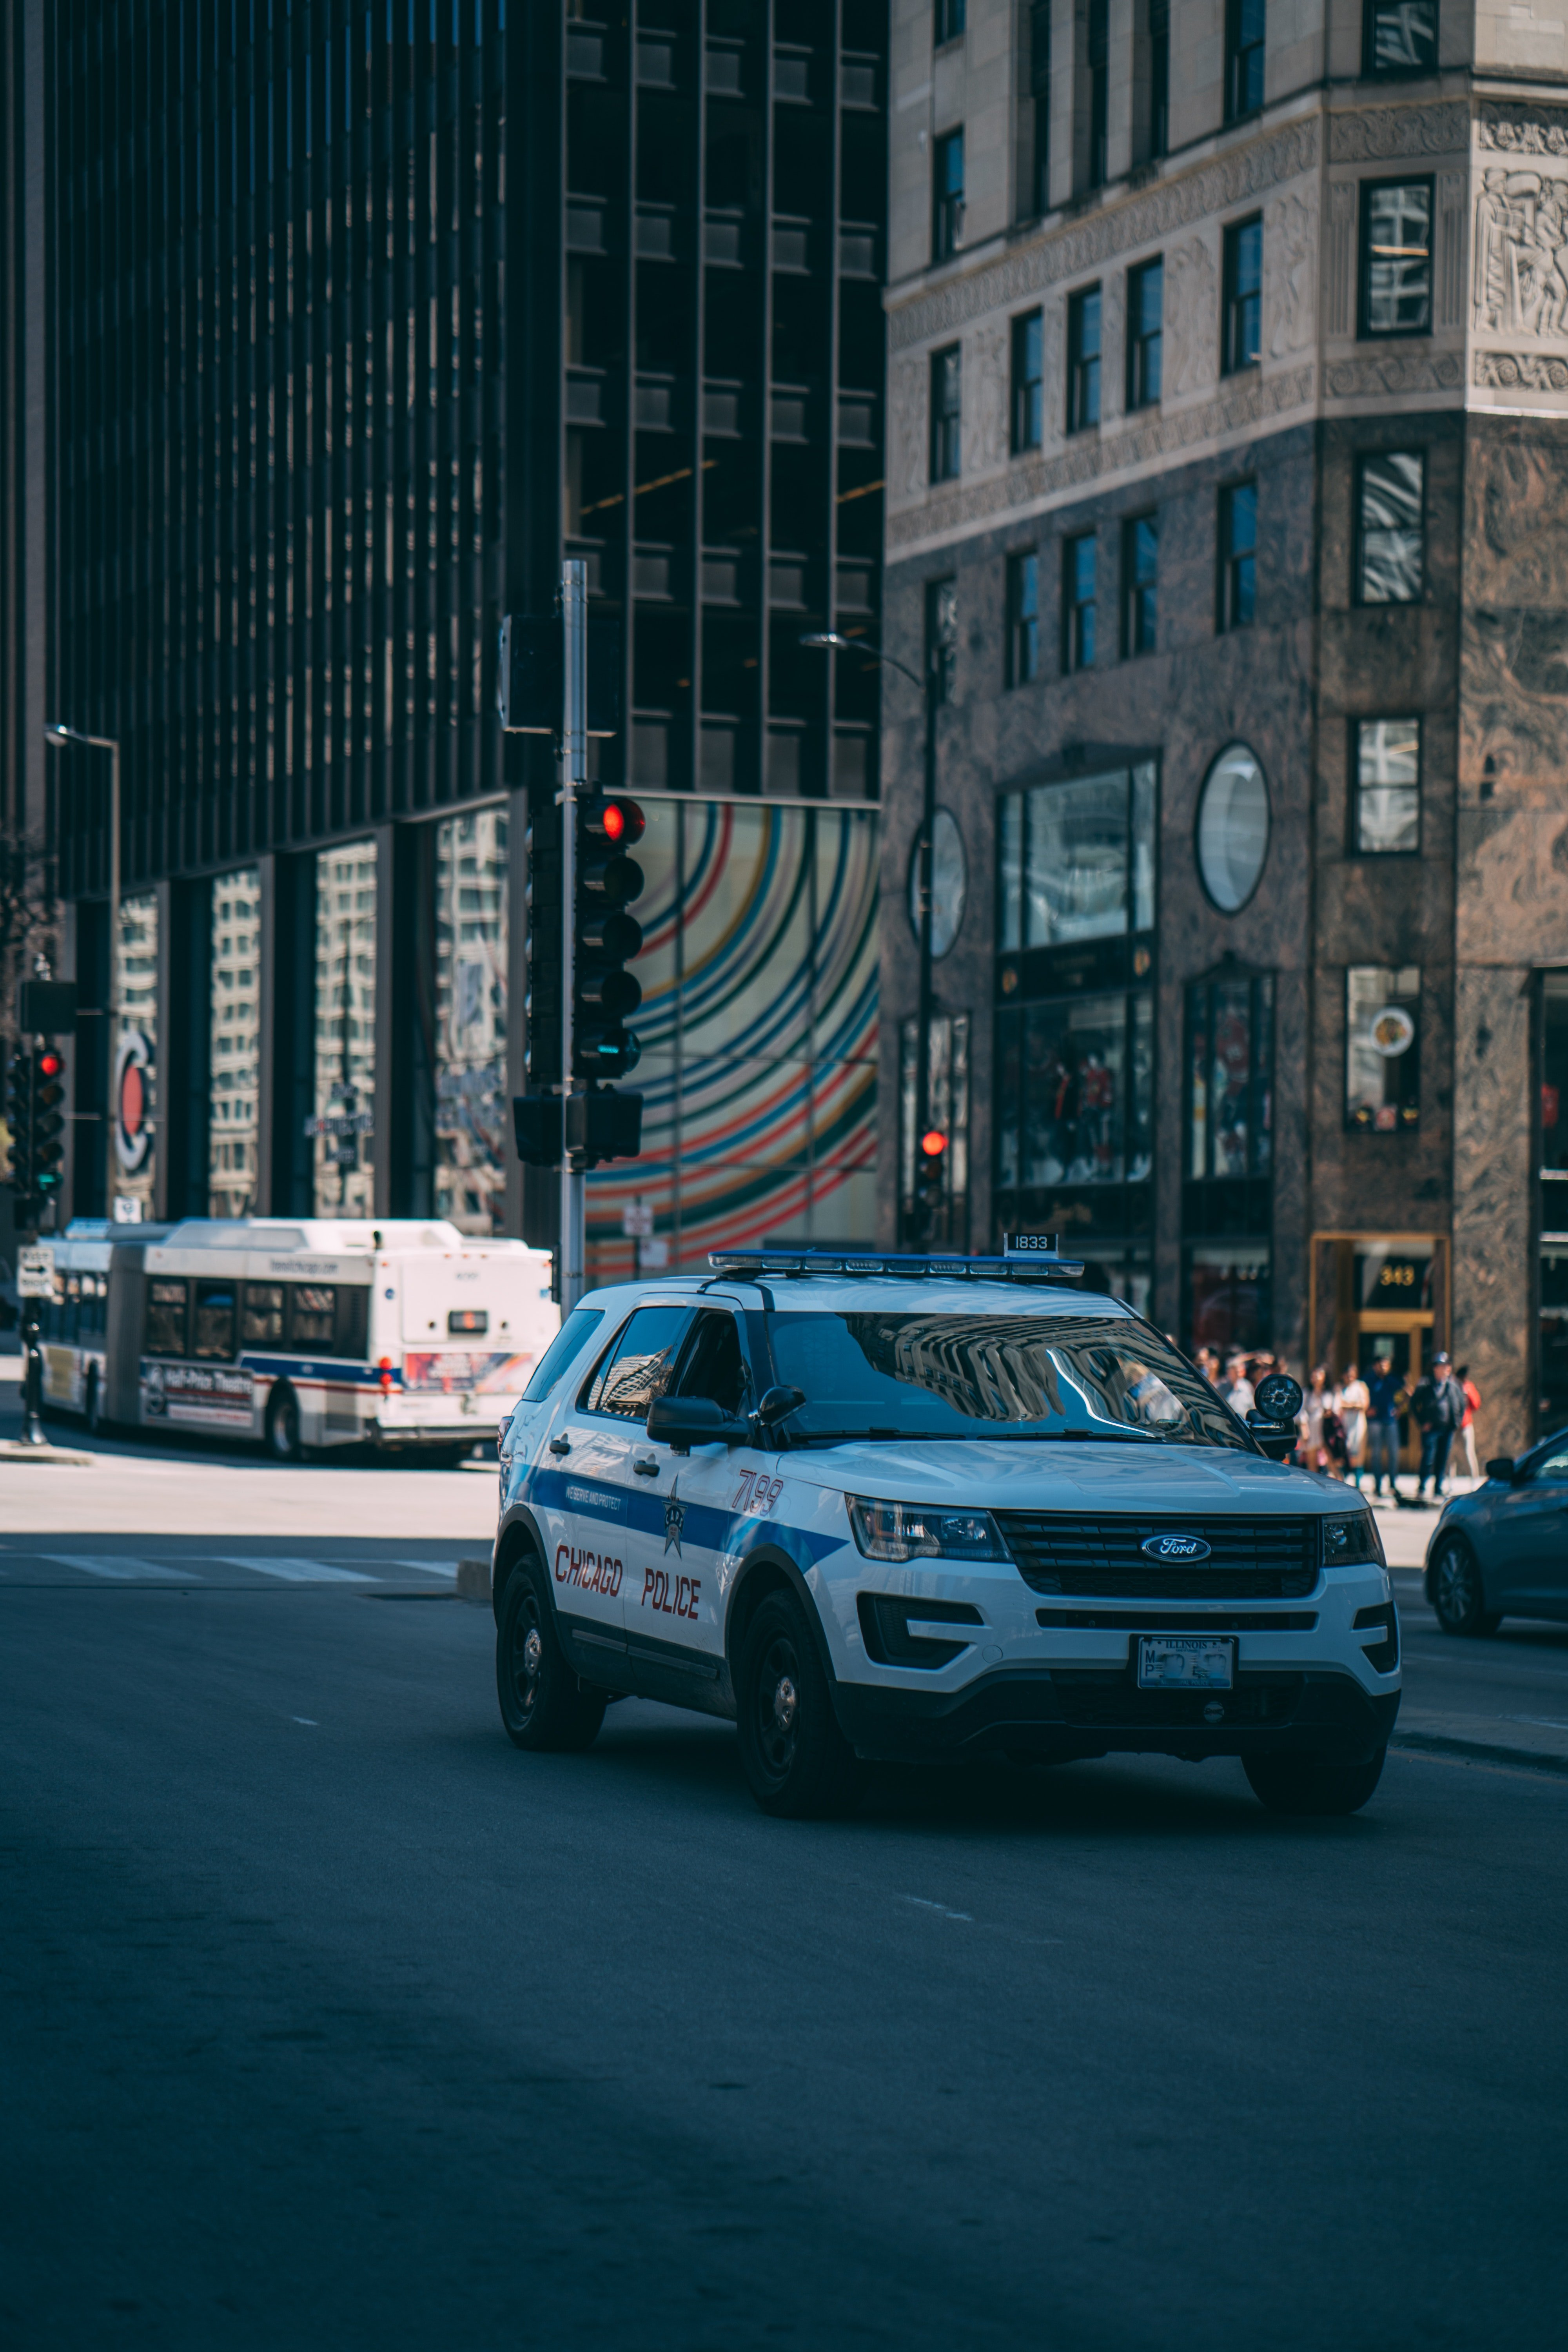 Pictured - A white police SUV passing by in the city | Pexels